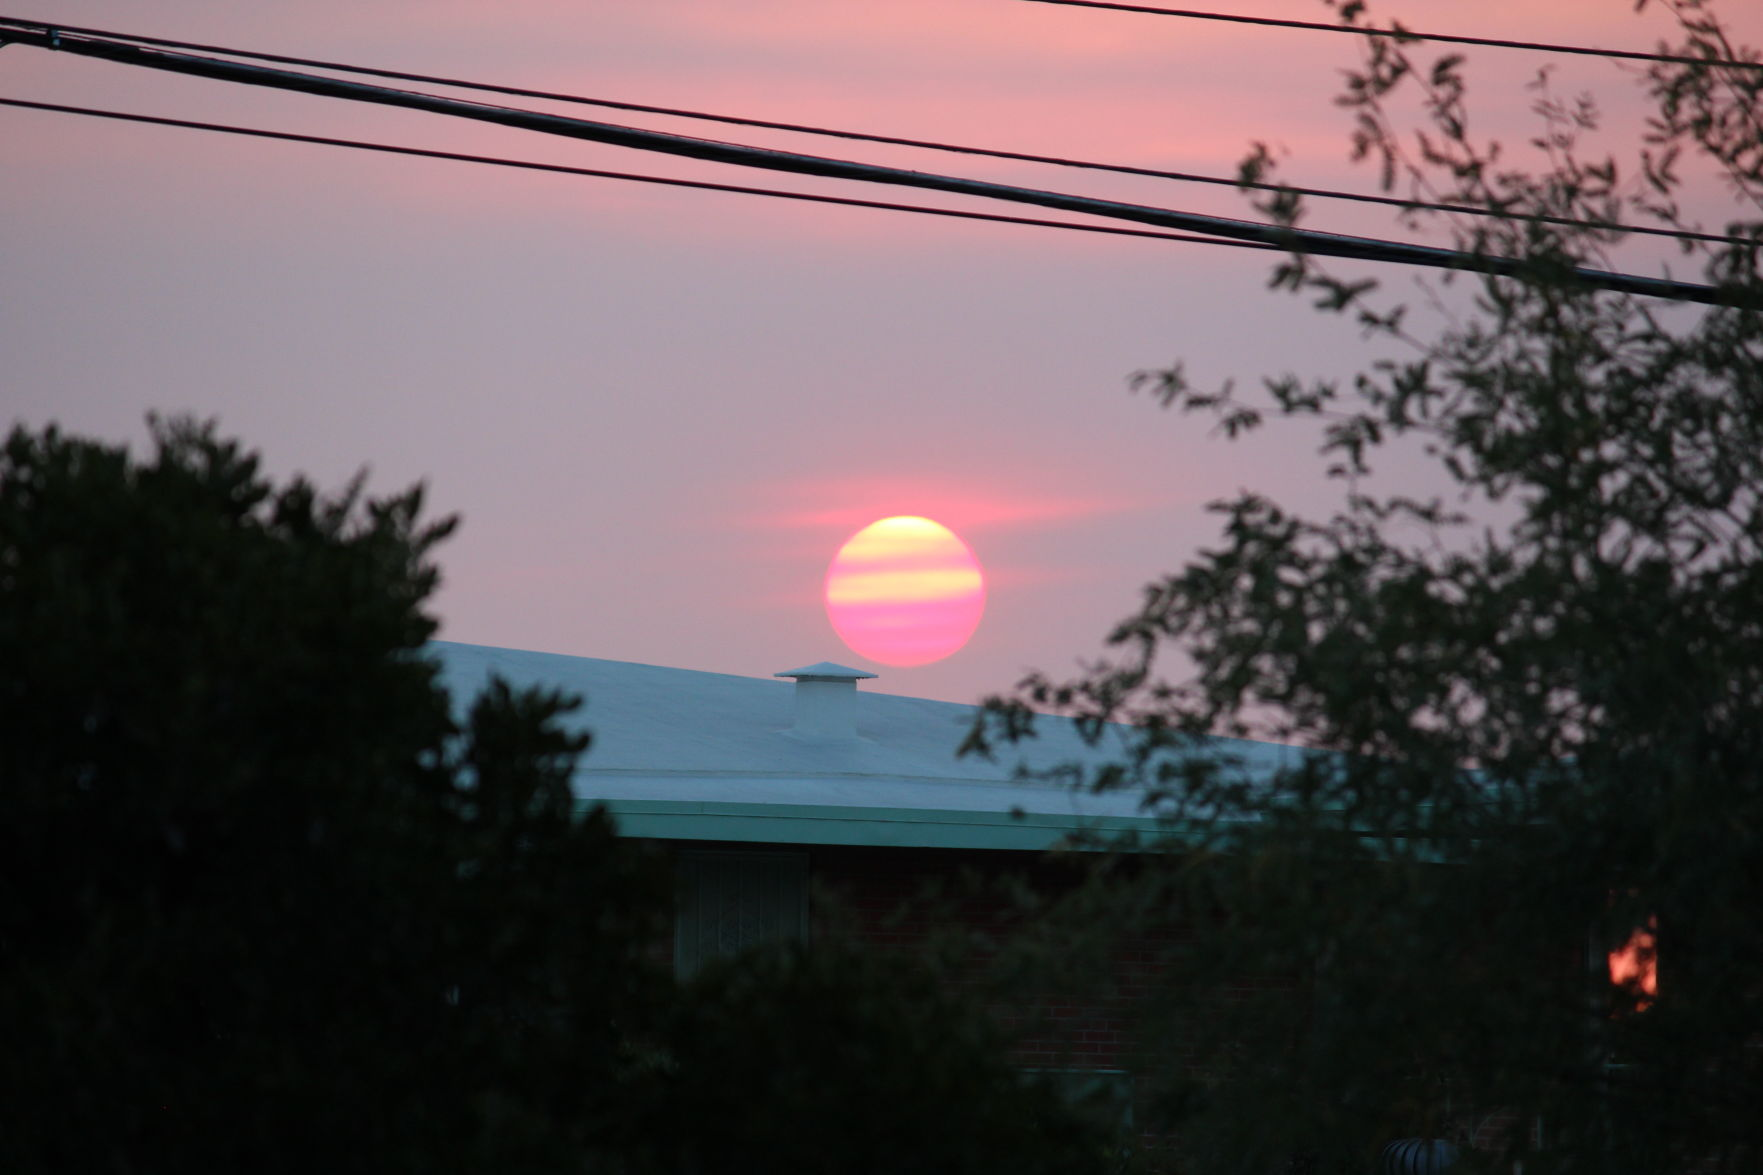 Beautiful sunset photos taken by readers   Outdoors and Events ...